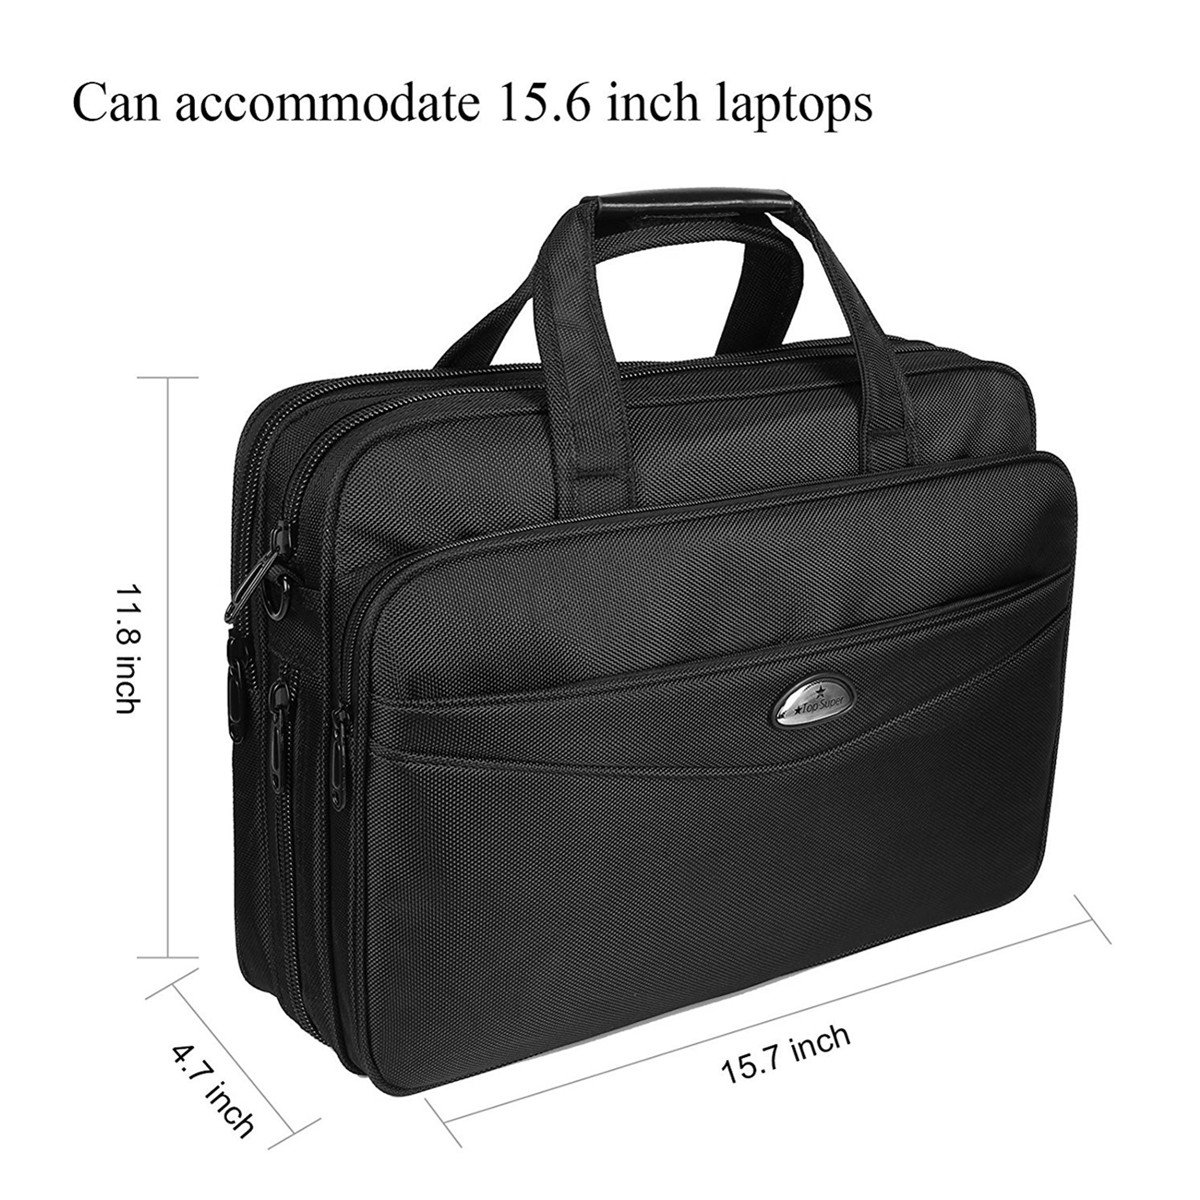 Briefcase 15.6 Inch Laptop Bag Laptop Messenger Bag, Business Office Bag Multifunctional Laptop Case Shoulder Bags for Men Women Fit for 15'' 15.6 Inch Acer HP Dell Lenovo Computer Notebook MacBook by Top Super (Image #3)